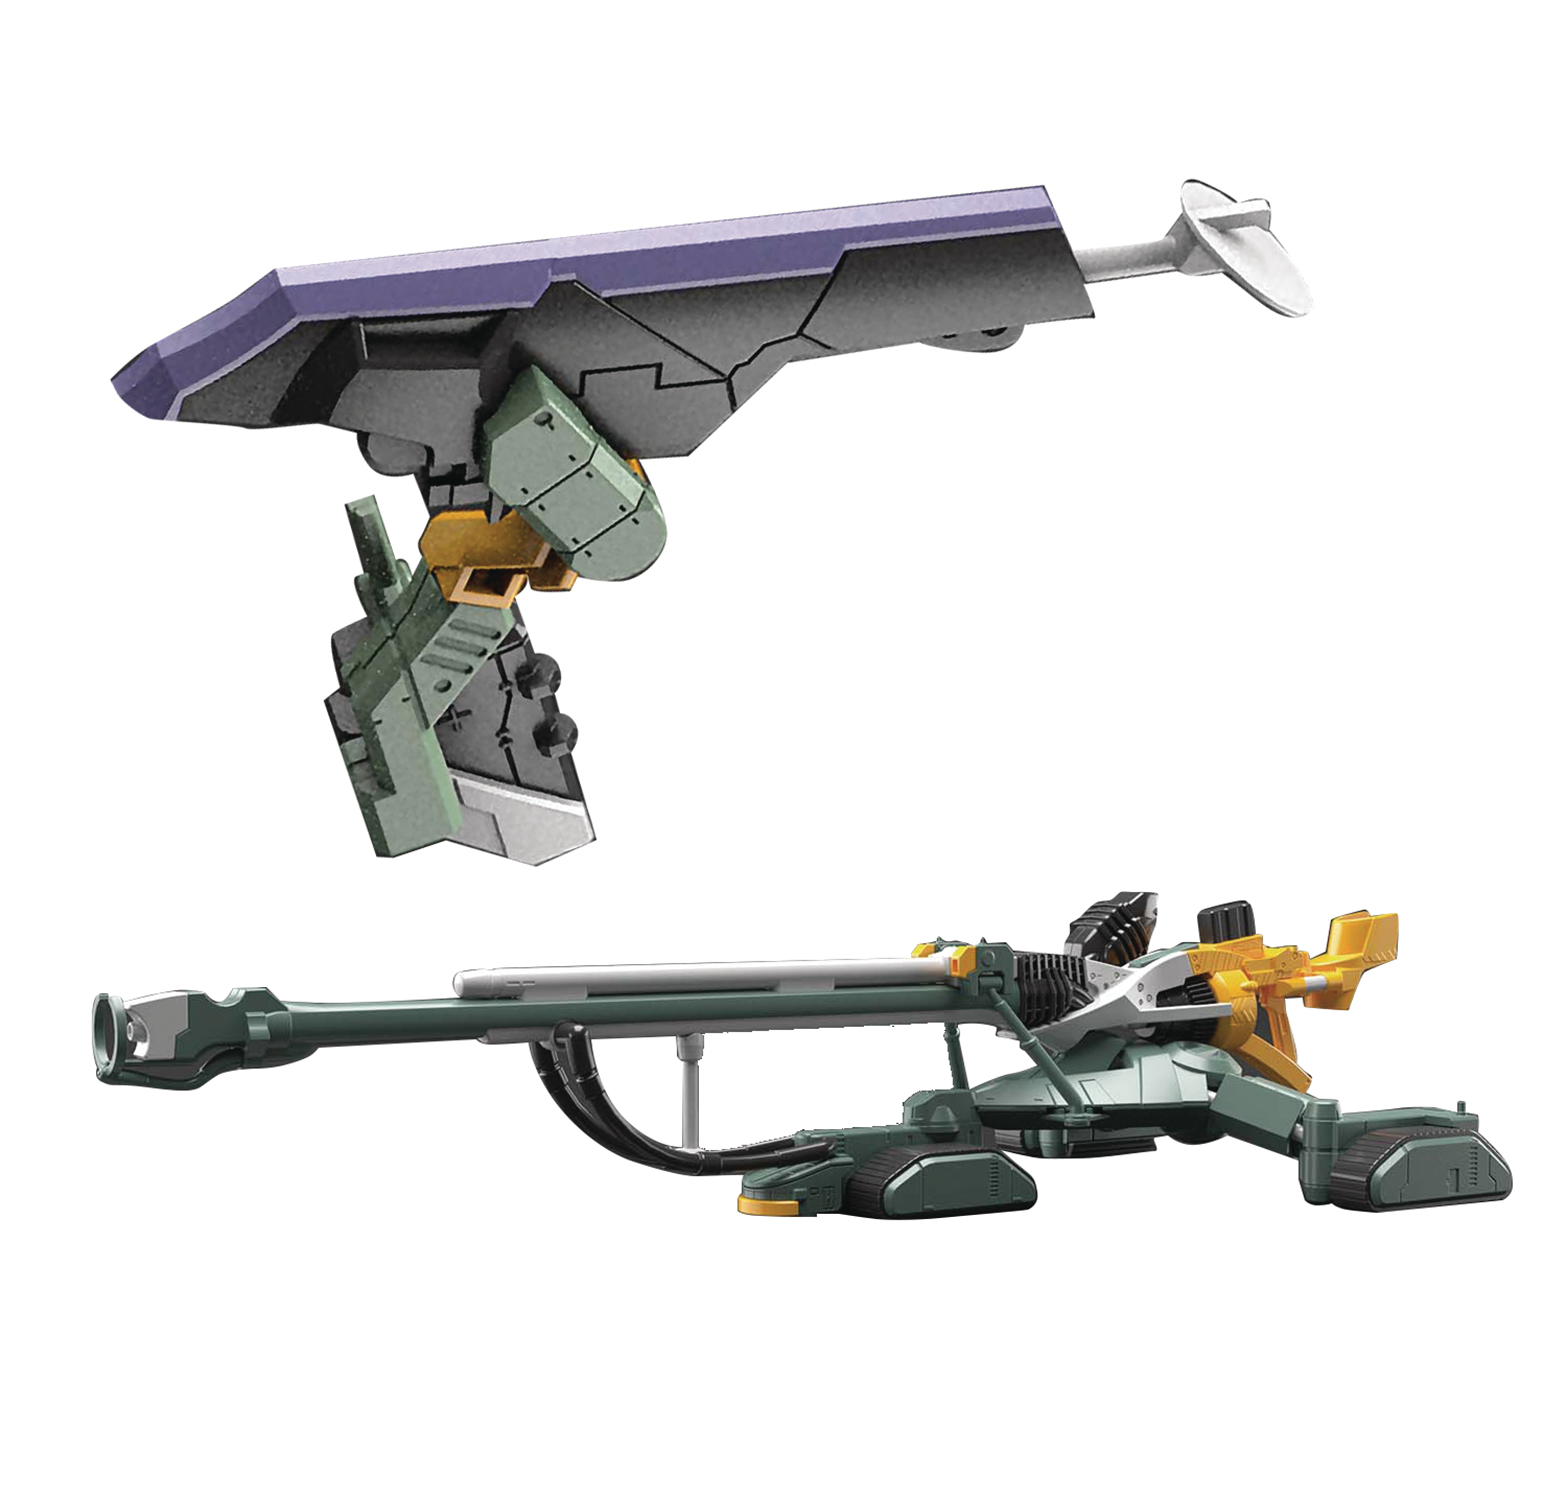 NGE EVANGELION UNIT-00 DX POSITRON CANNON SET 1/144 MDL KIT